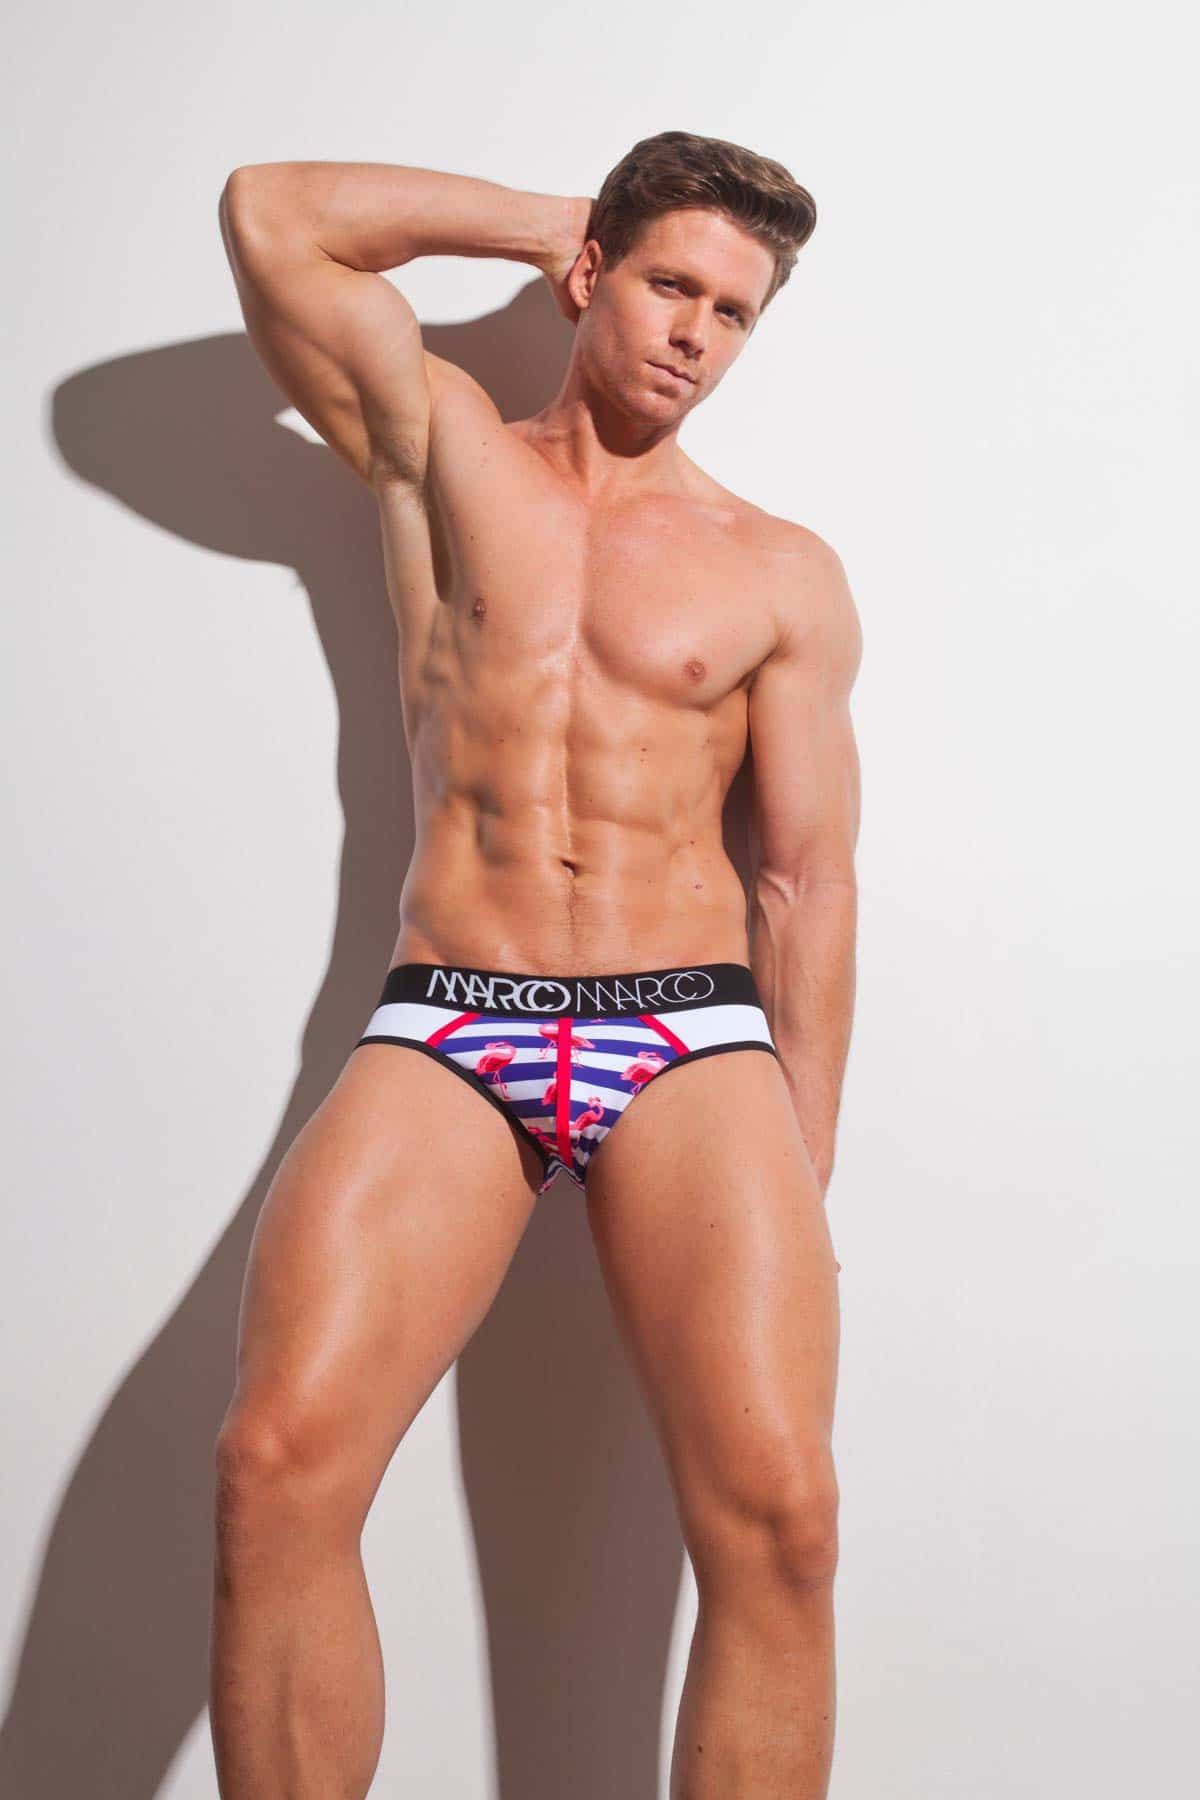 Male underwear model wearing Marco Marco Half-Moon Nautical Brief available at www.MensUnderwear.io